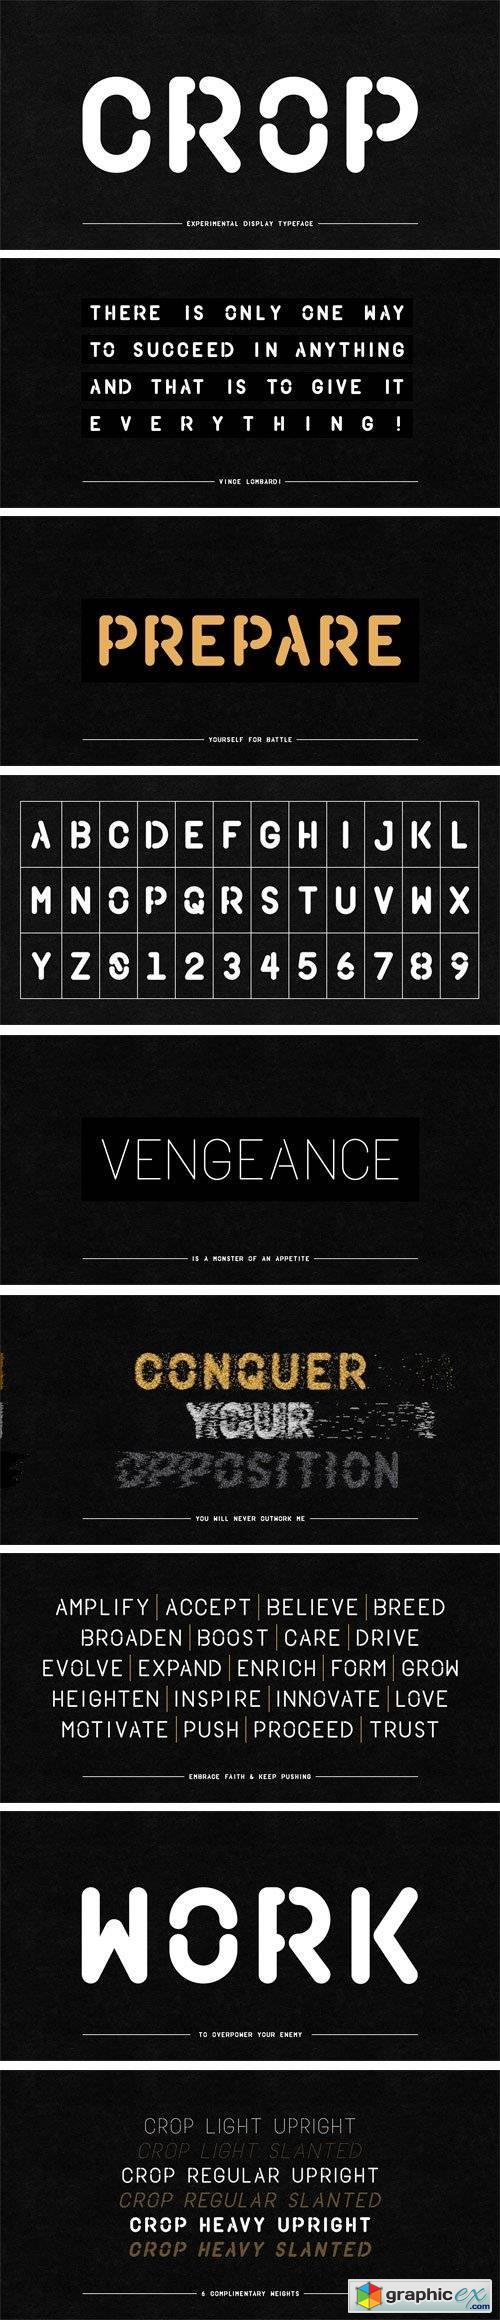 Crop Font Family - 6 Fonts for $133